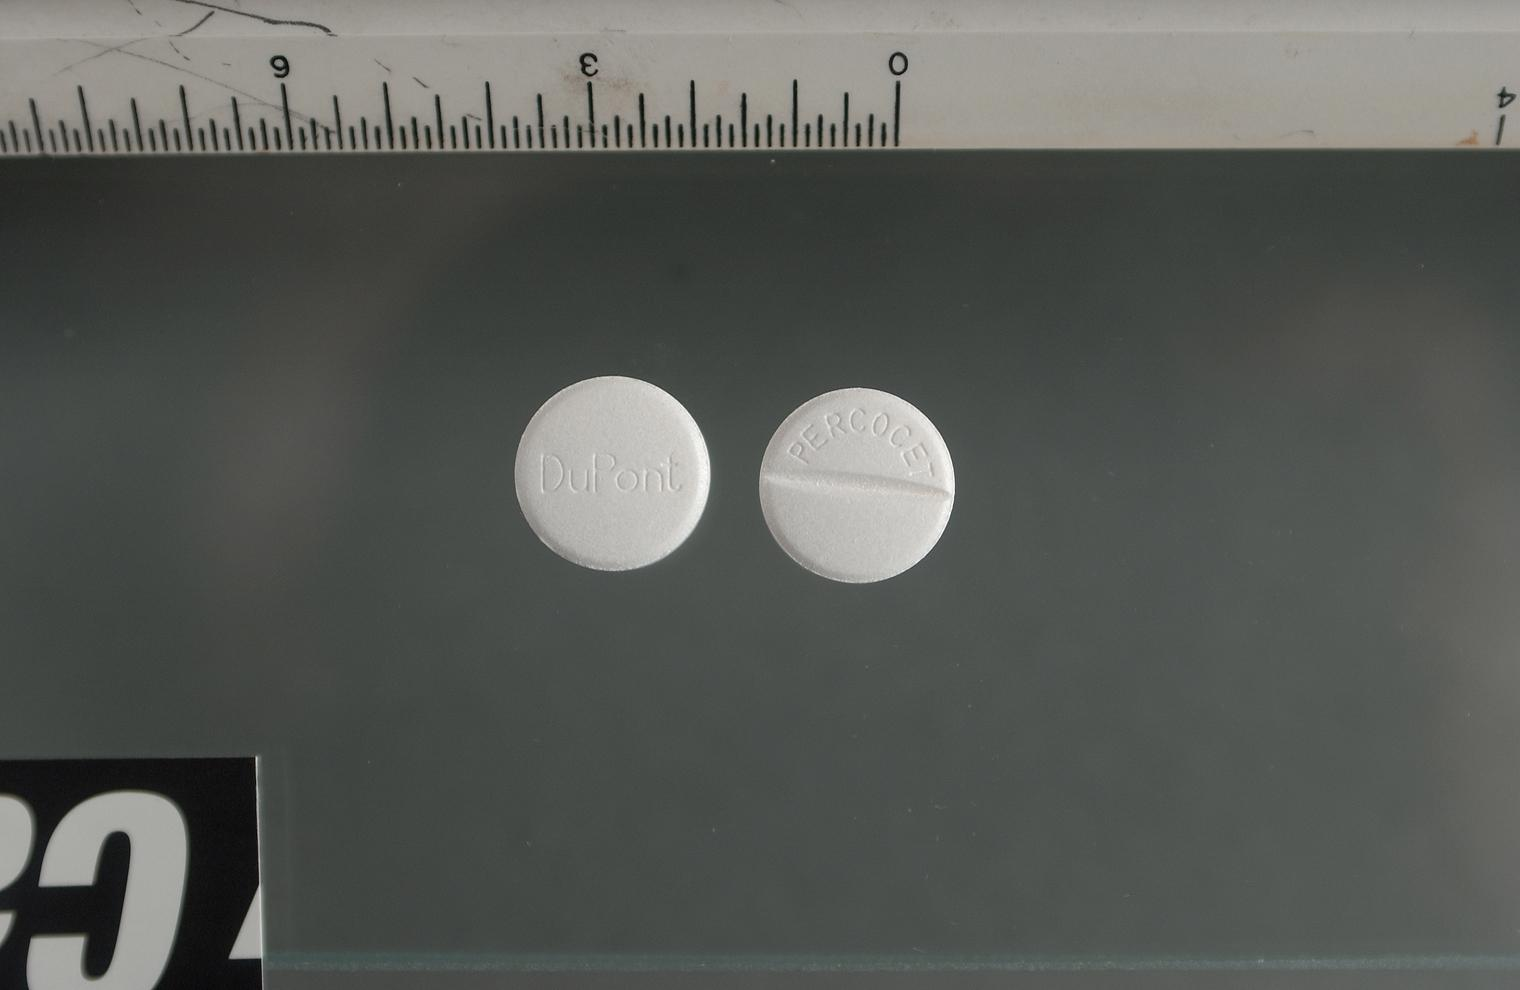 Percocet 5mg